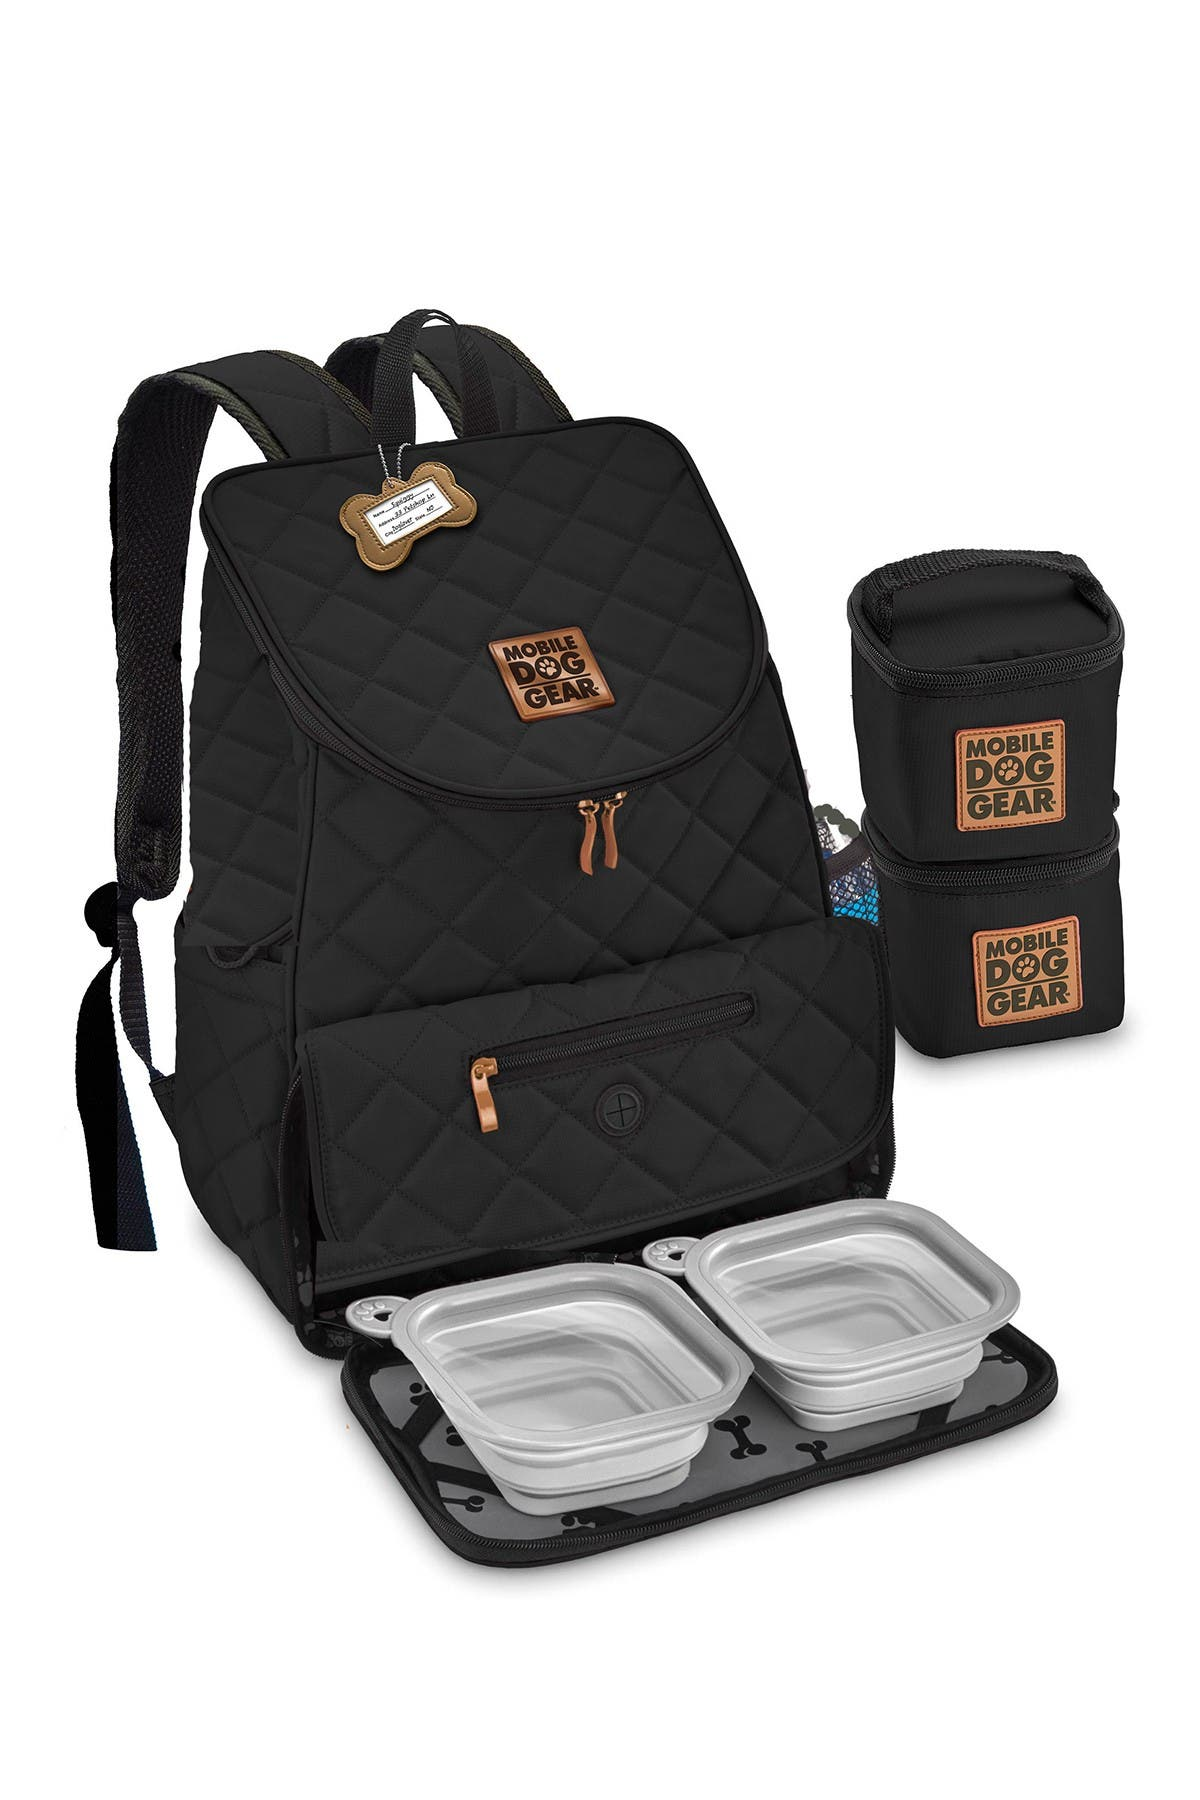 Image of MOBILE DOG GEAR Weekend Backpack - Black